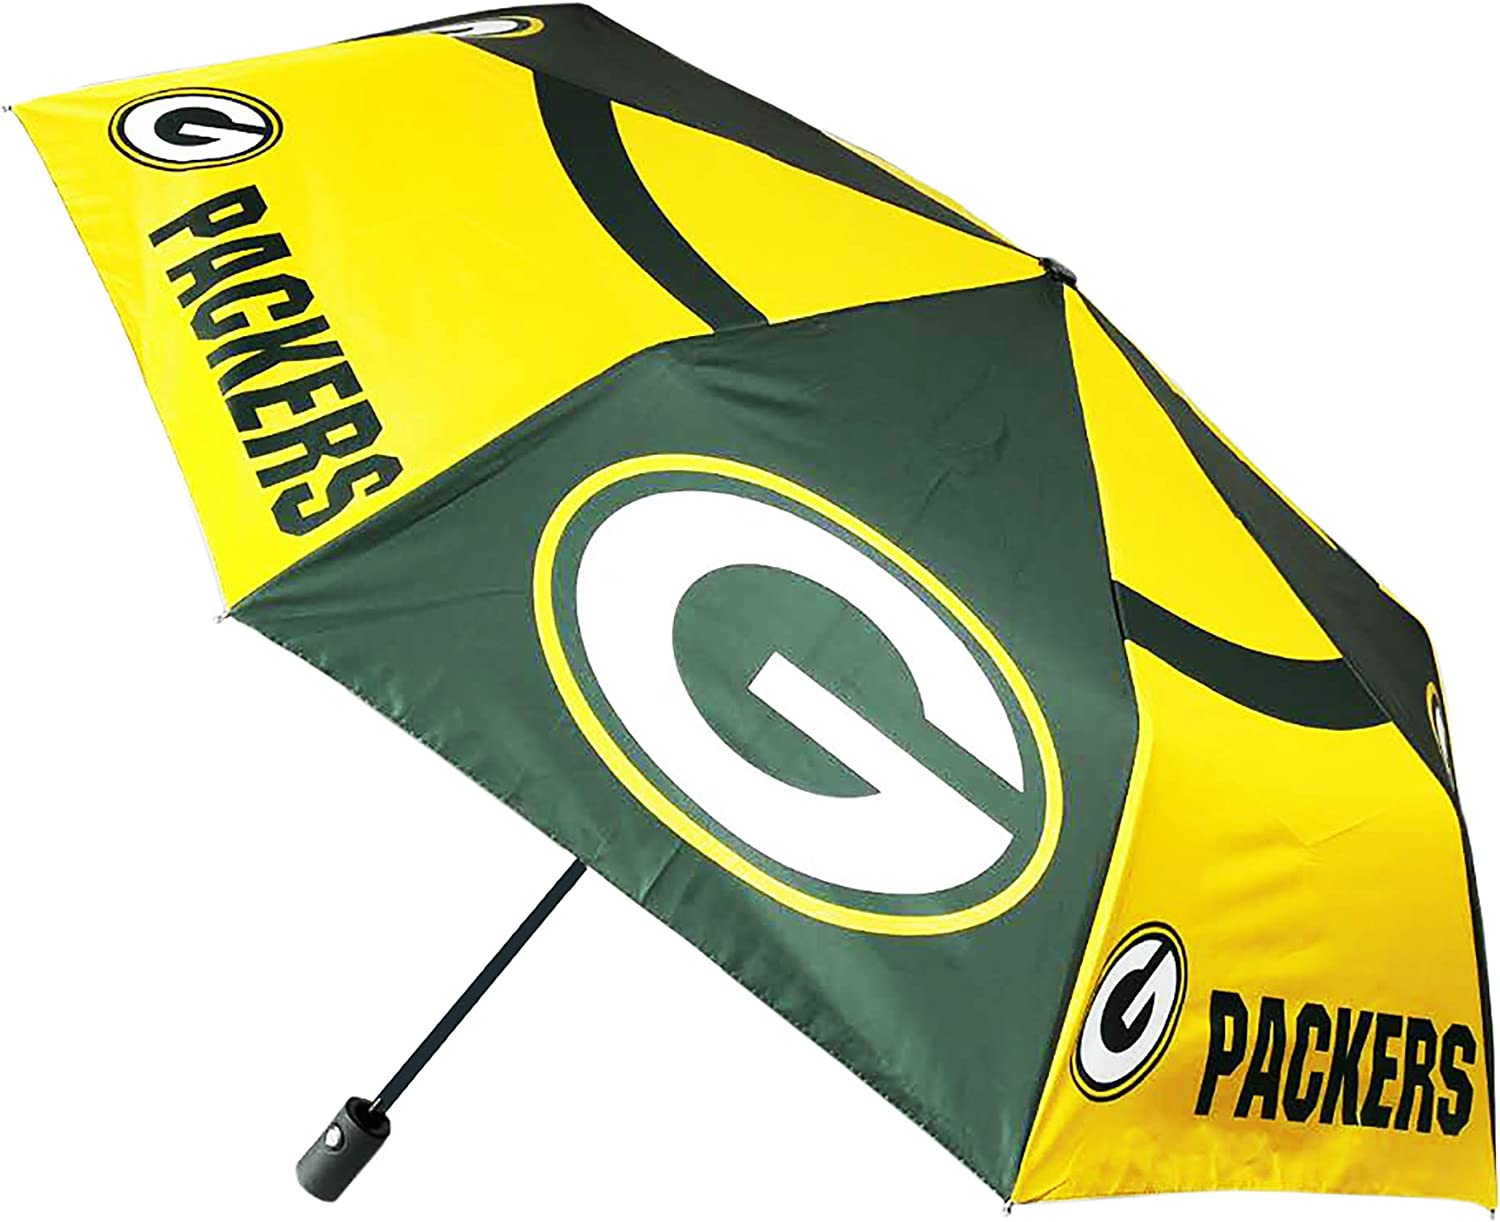 Football Team Auto Folding Umbrella Waterproof Sun - Resistant for Travel Outdoor (Green Bay Packers) : Sports & Outdoors